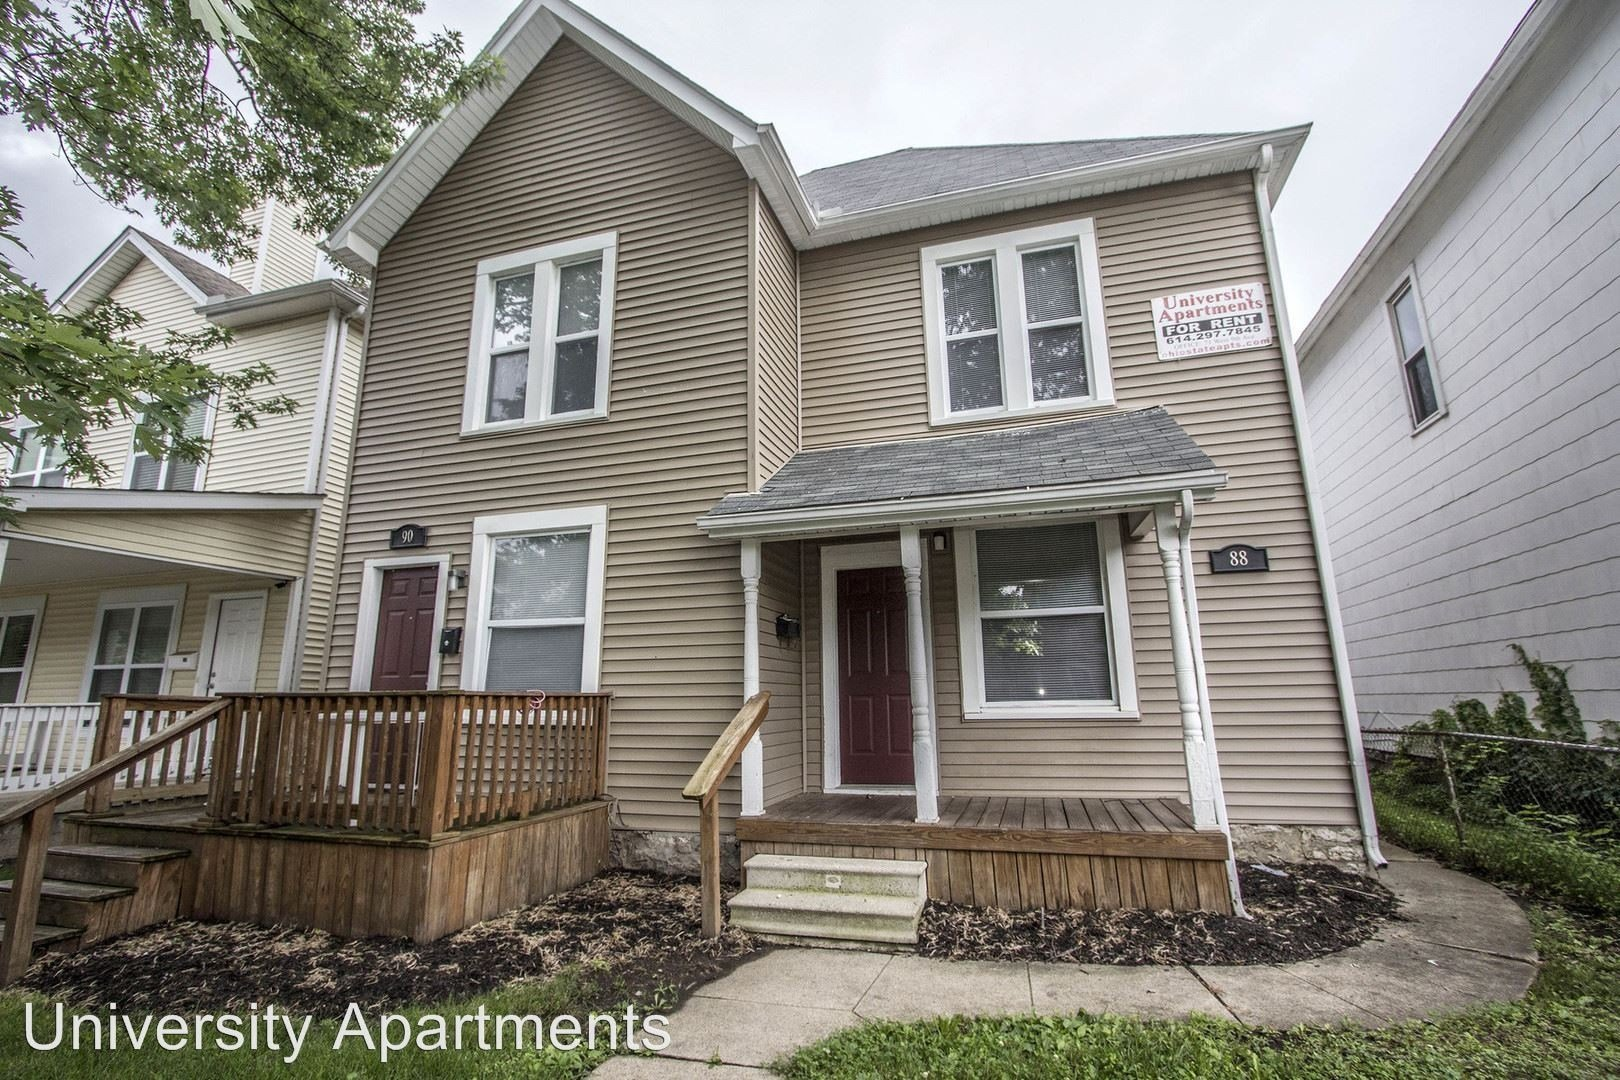 Best 88 Mcmillen Ave Columbus Oh 43201 3 Bedroom House For Rent For 1 400 Month Zumper With Pictures